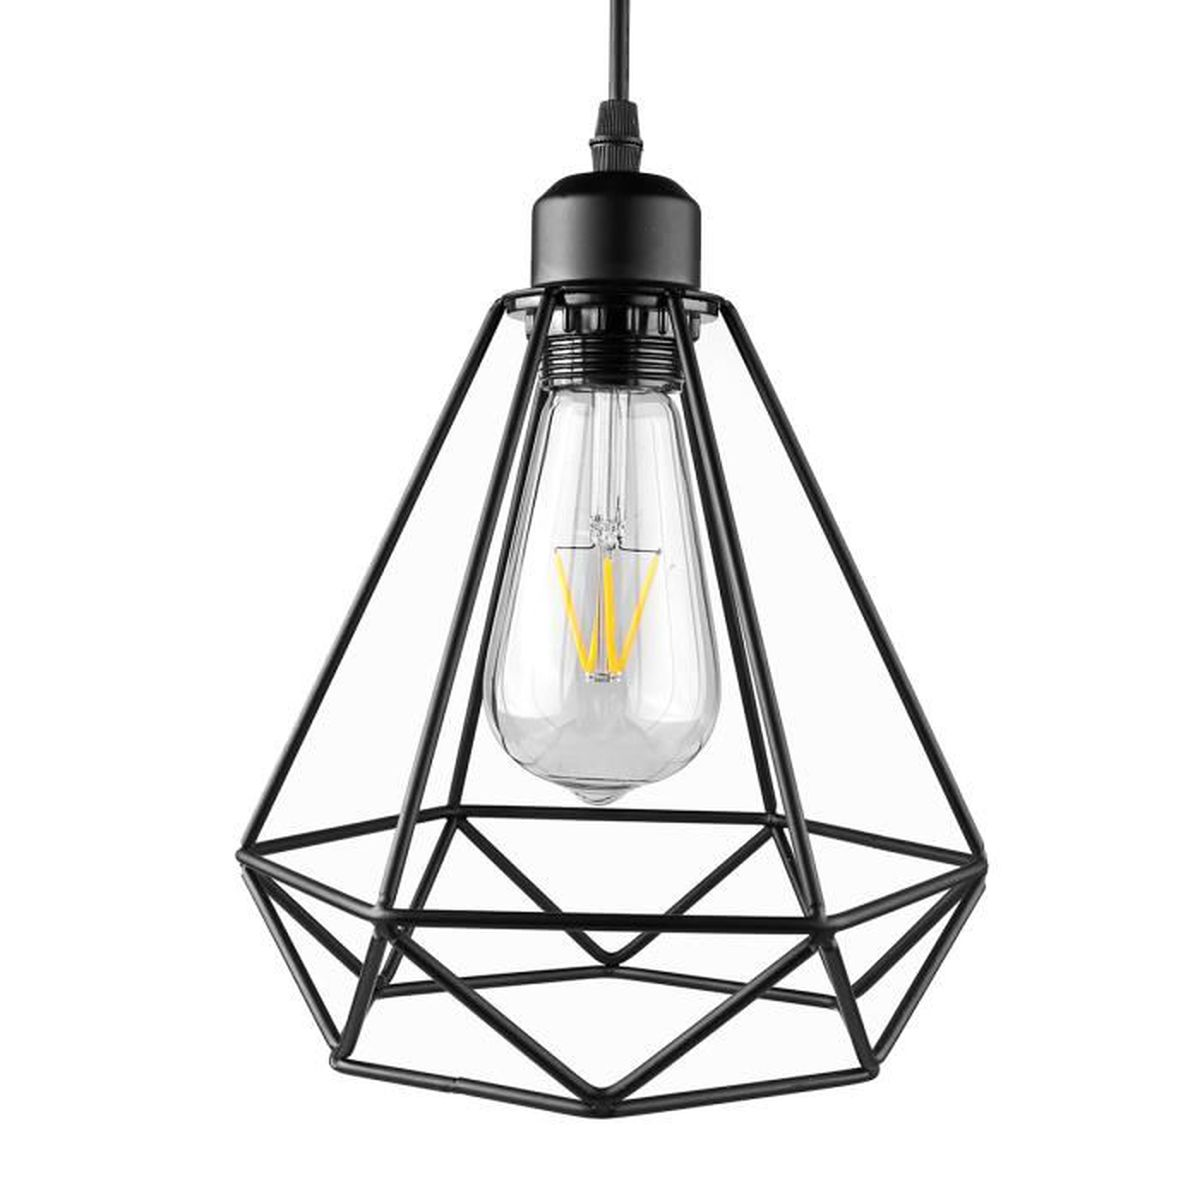 E27 lampe suspension lustre cage en fer abat jour douille for Lustre en suspension